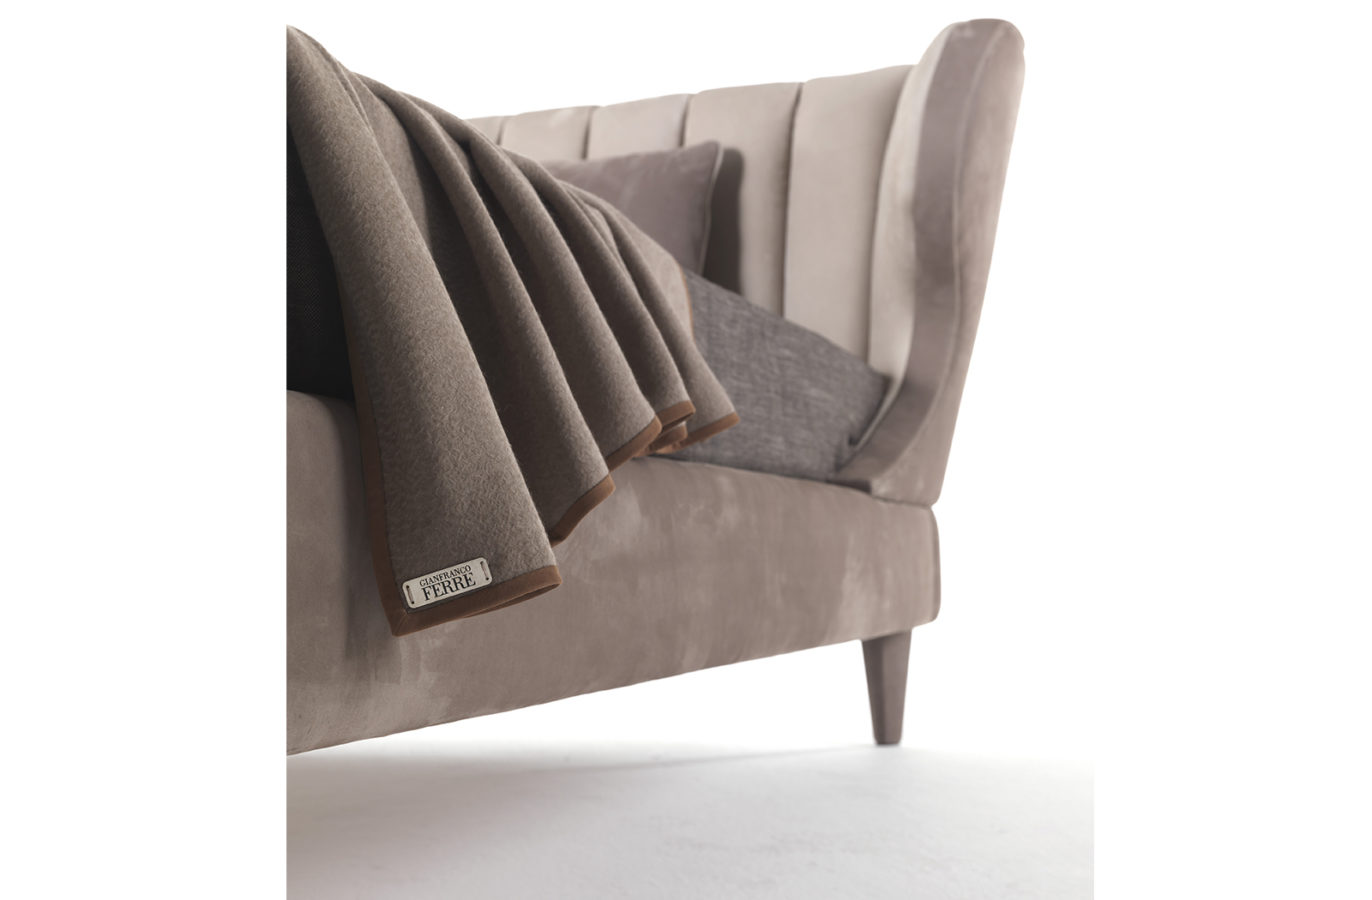 Gianfranco Ferre Home Dunlop Bed 01